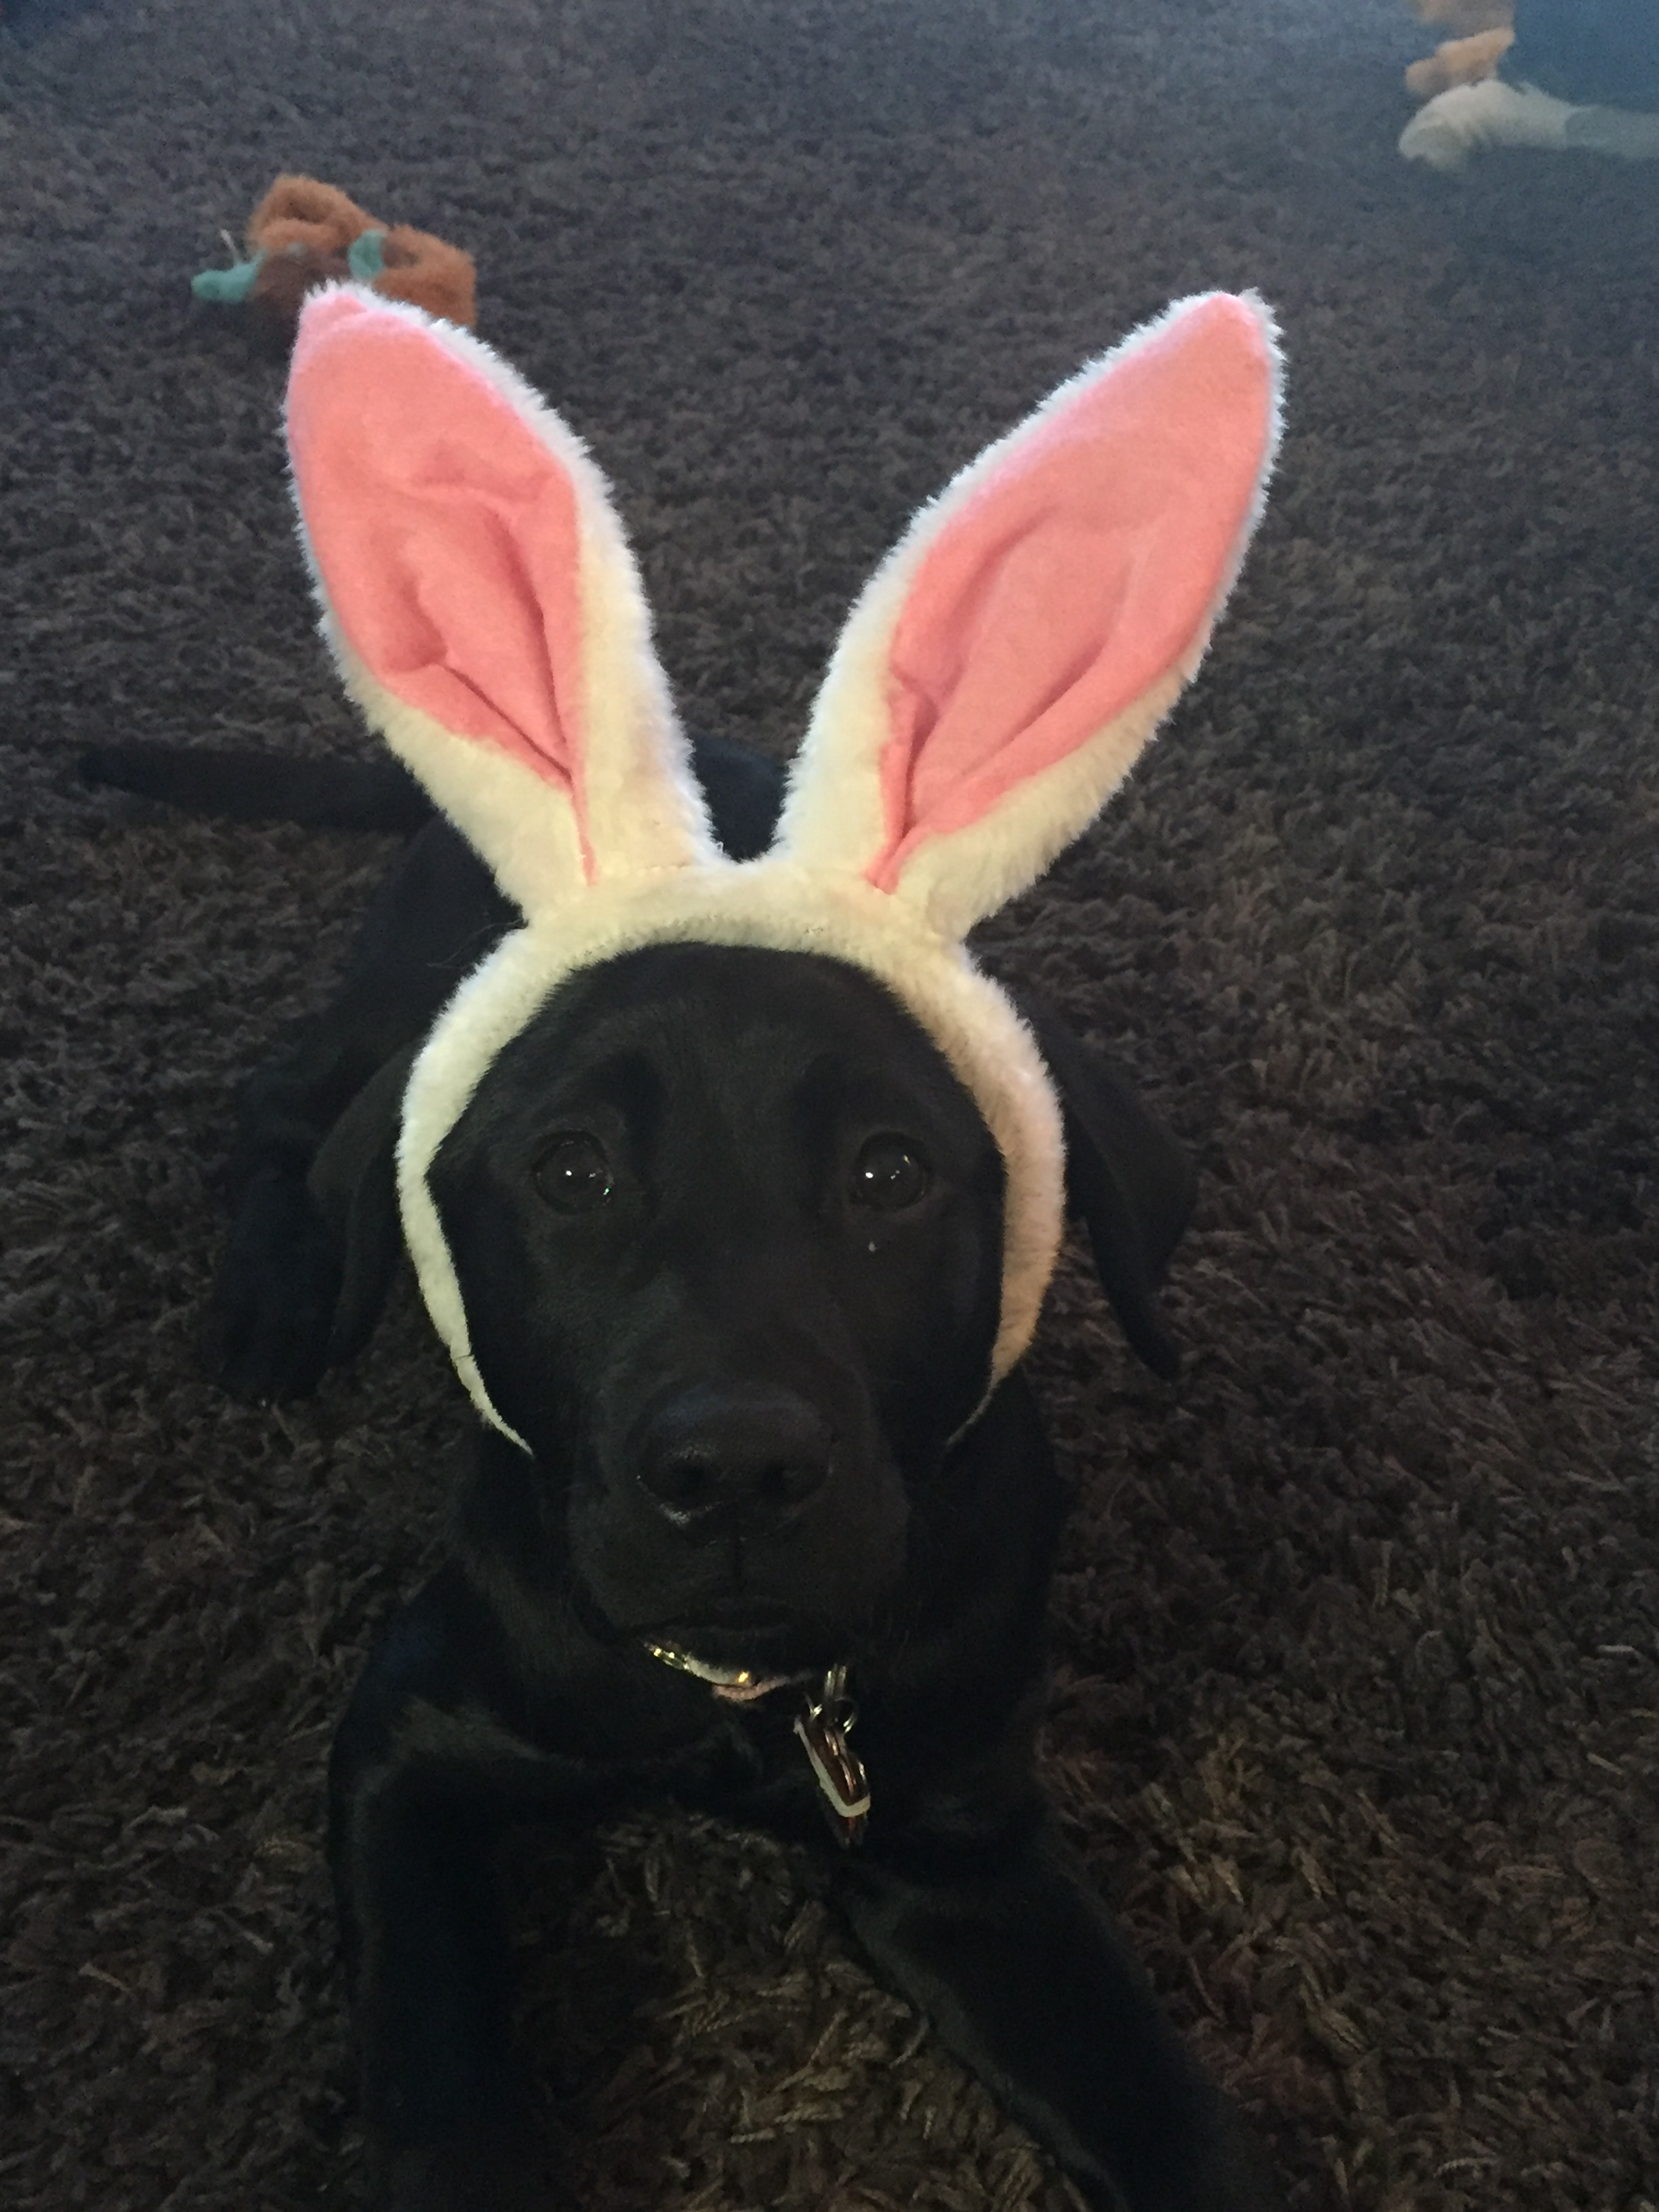 Dove, a black Labrador Retriever, is looking at the viewer from a down position and is wearing pink bunny ears.